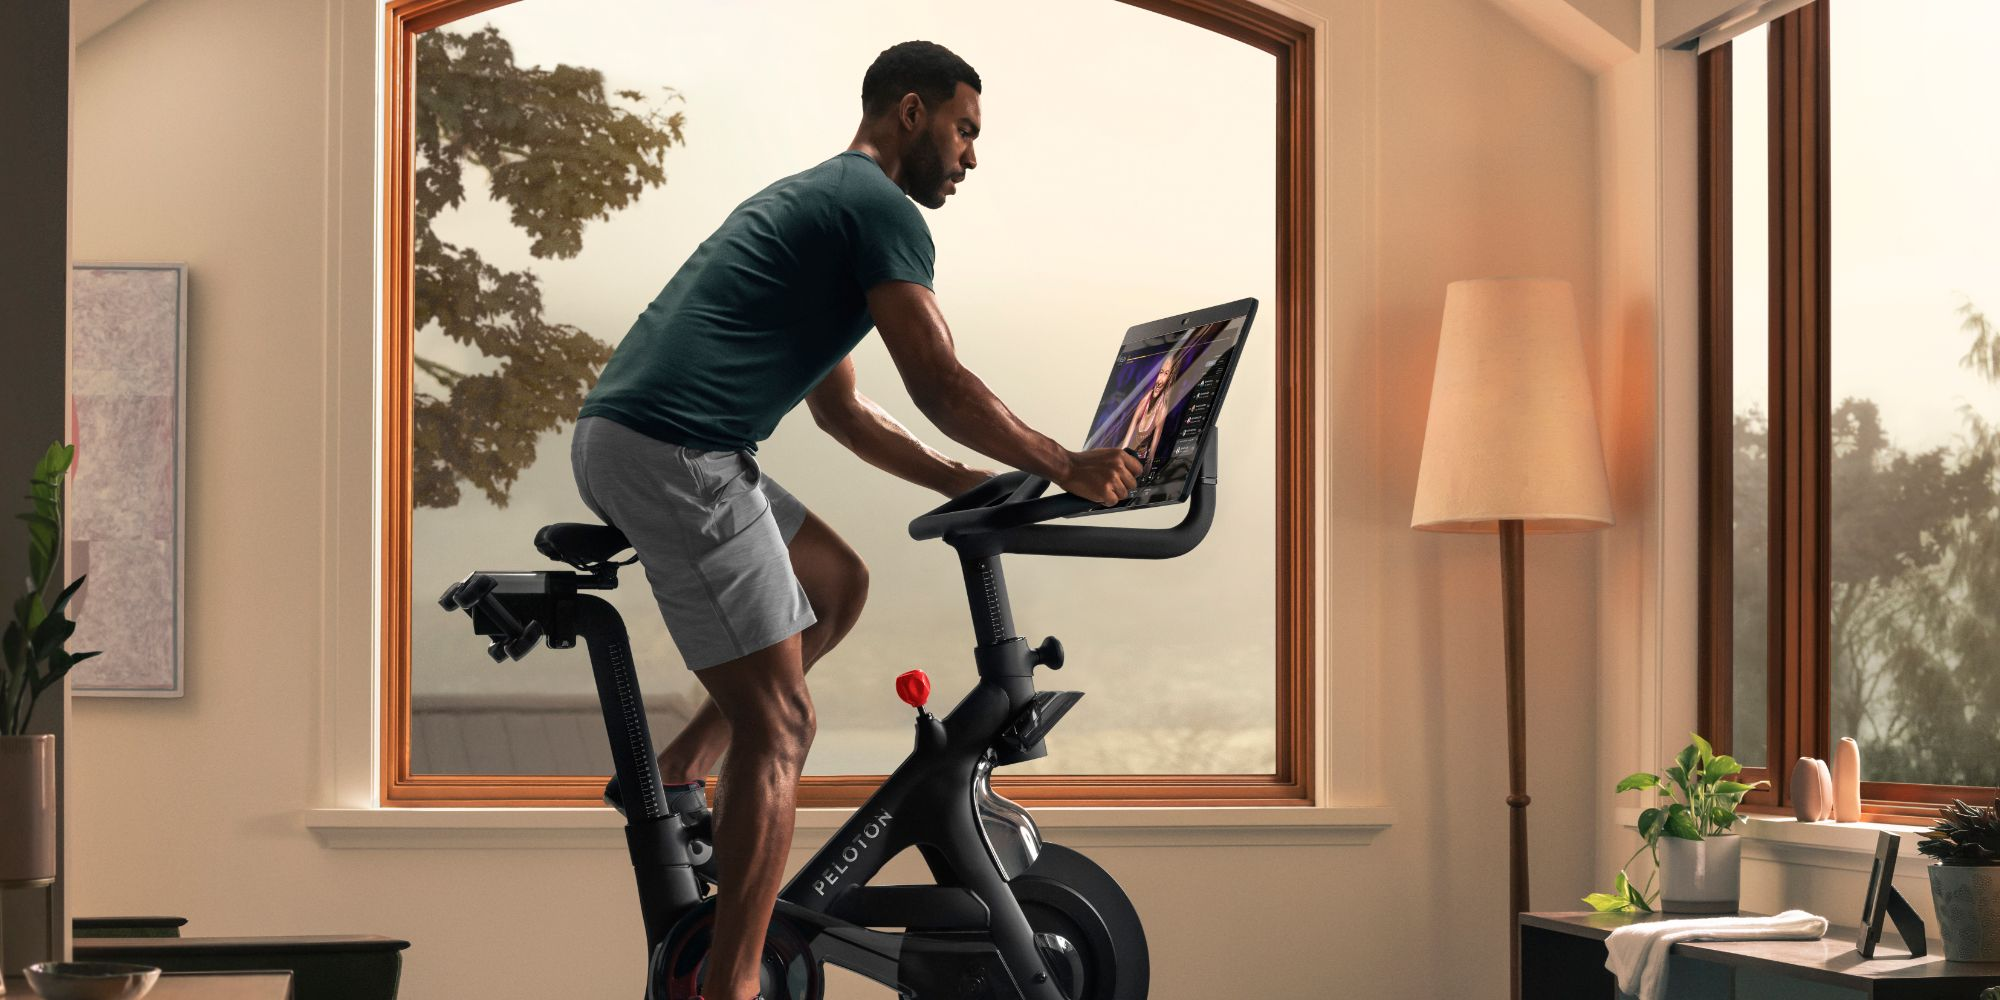 Peloton Bike Bug Could Give Hackers Access To Video: What You Need To Know